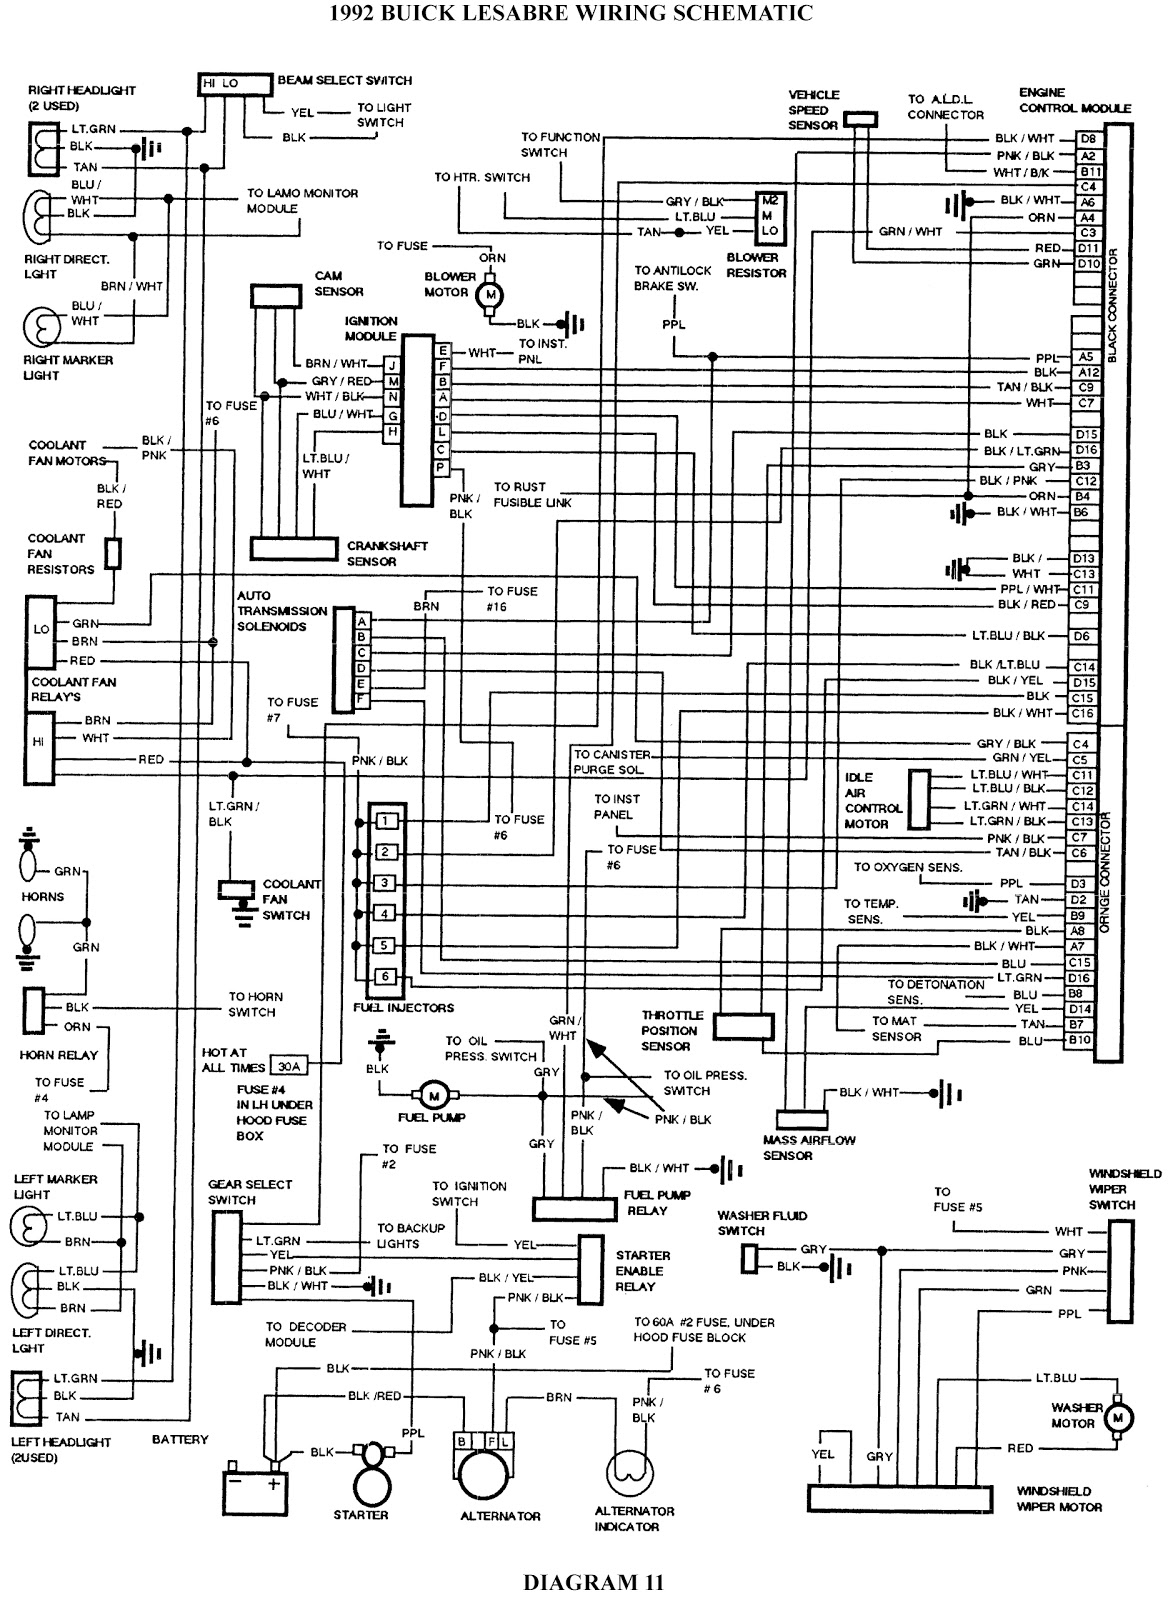 68 Buick Fuse Diagram Wiring Schematic - Basic Wiring Diagram •